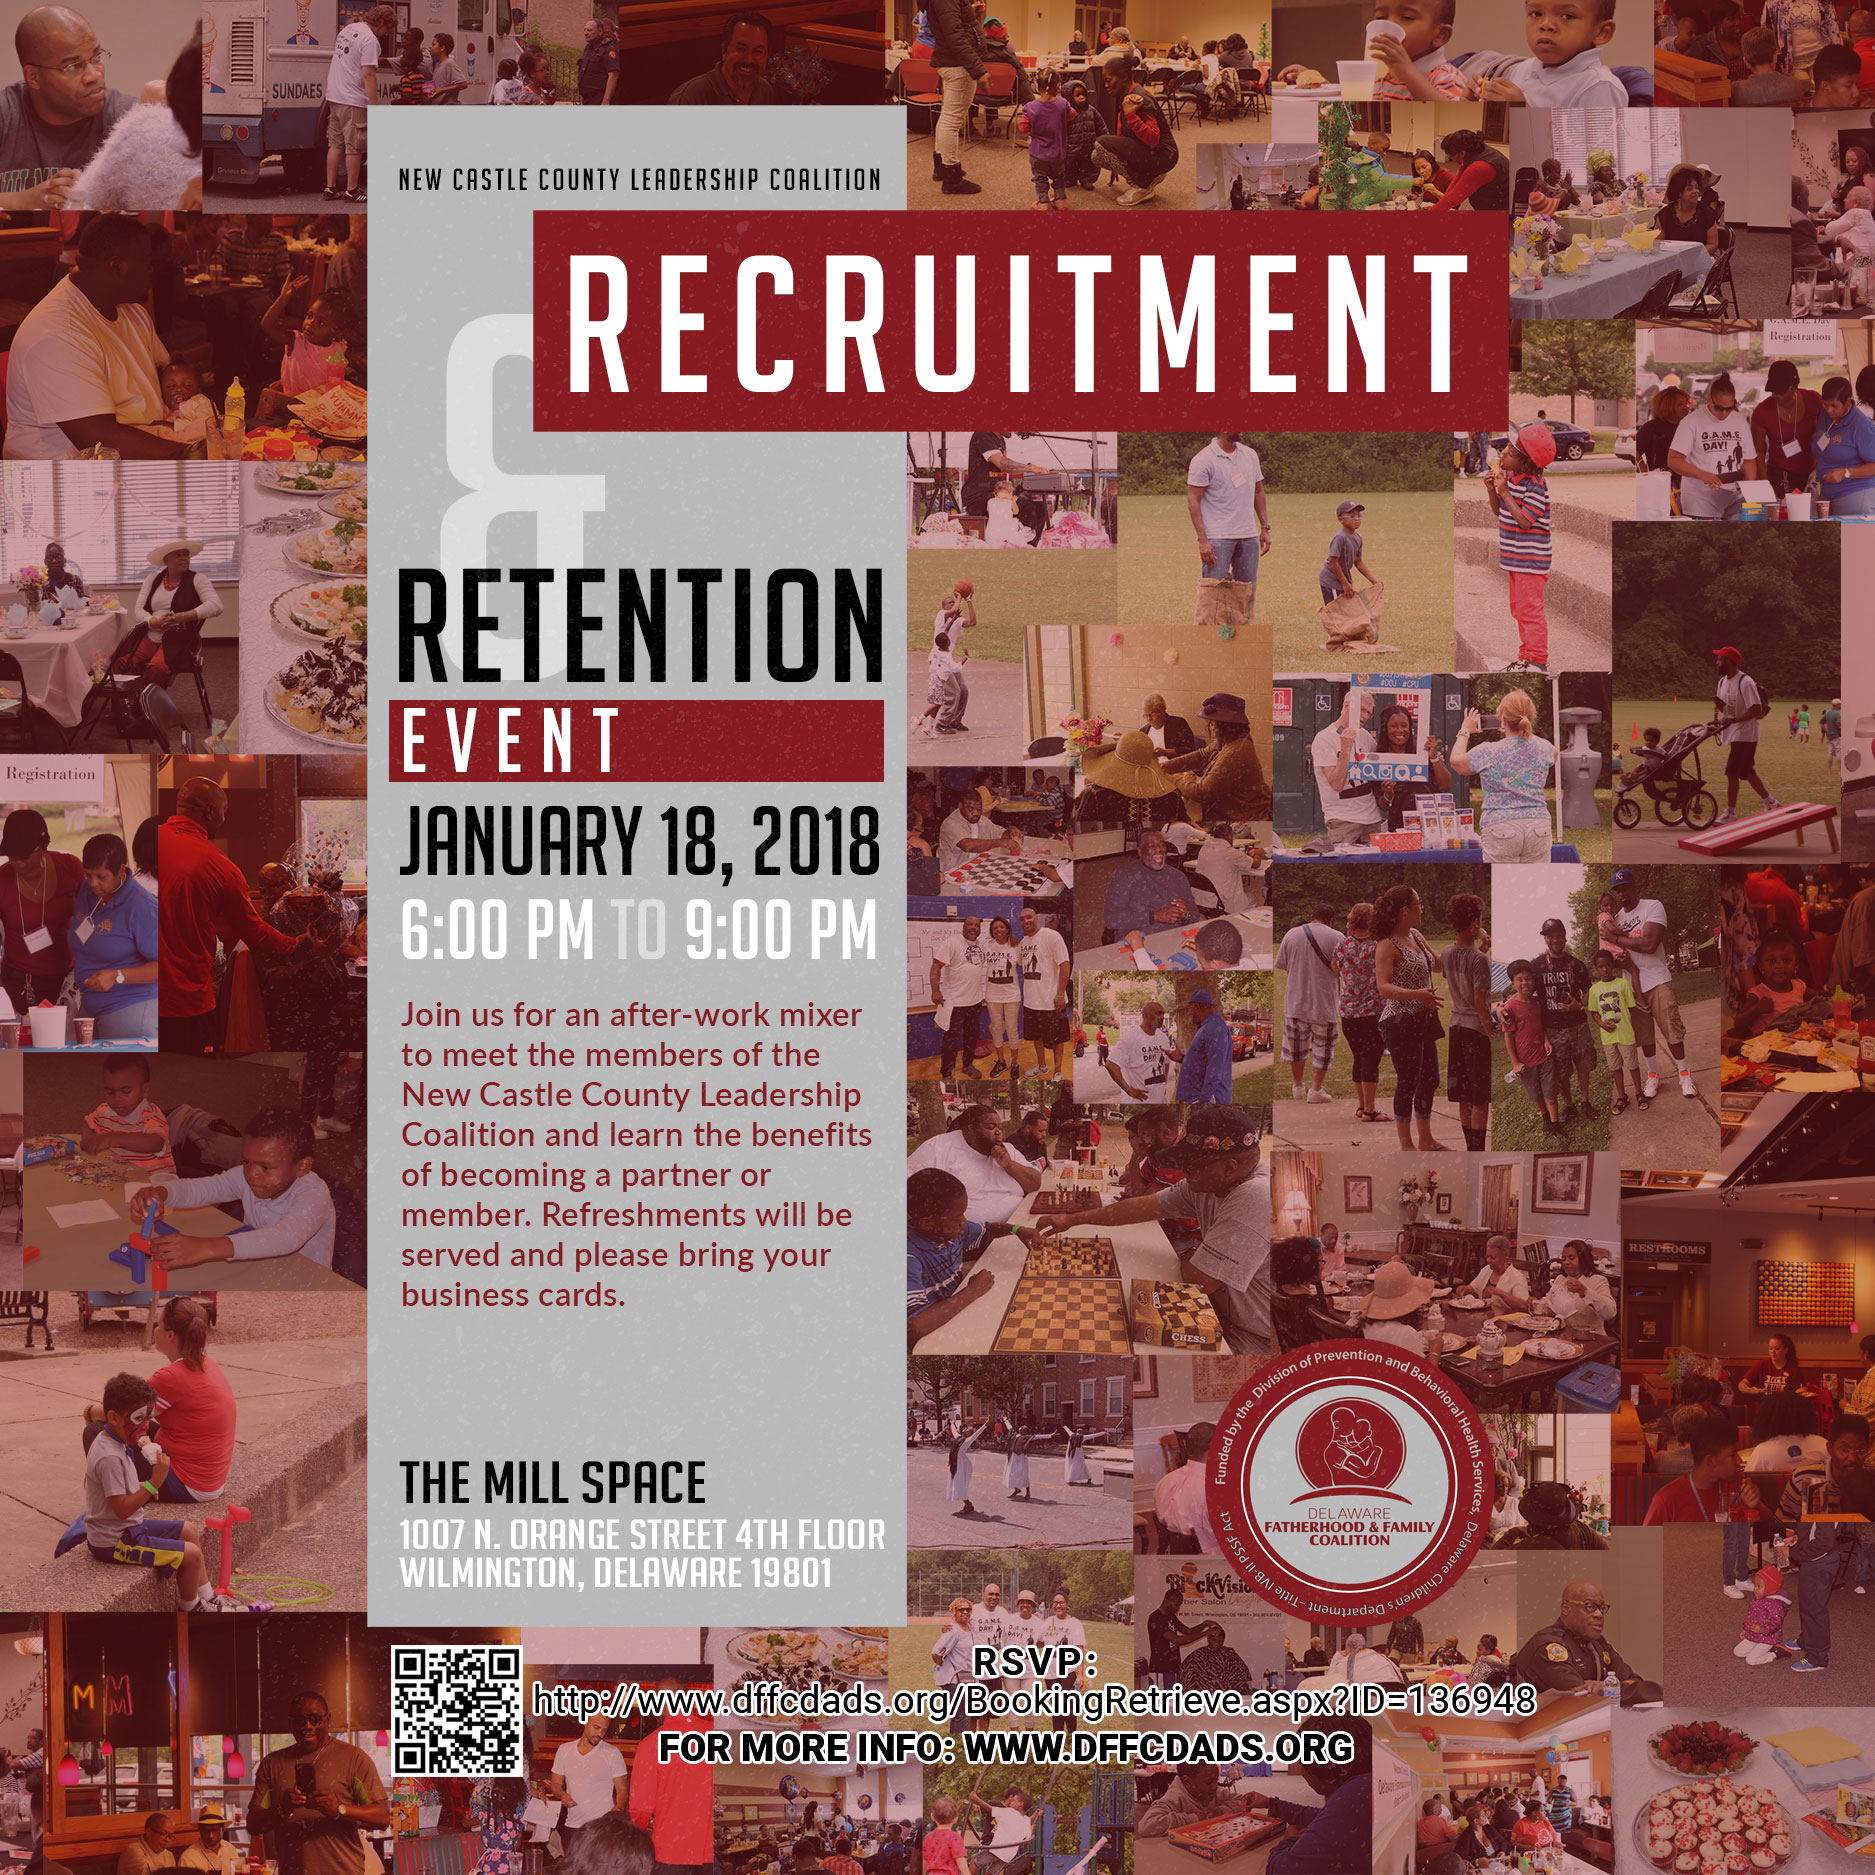 New Castle County Recruitment and Retention Event Flyer